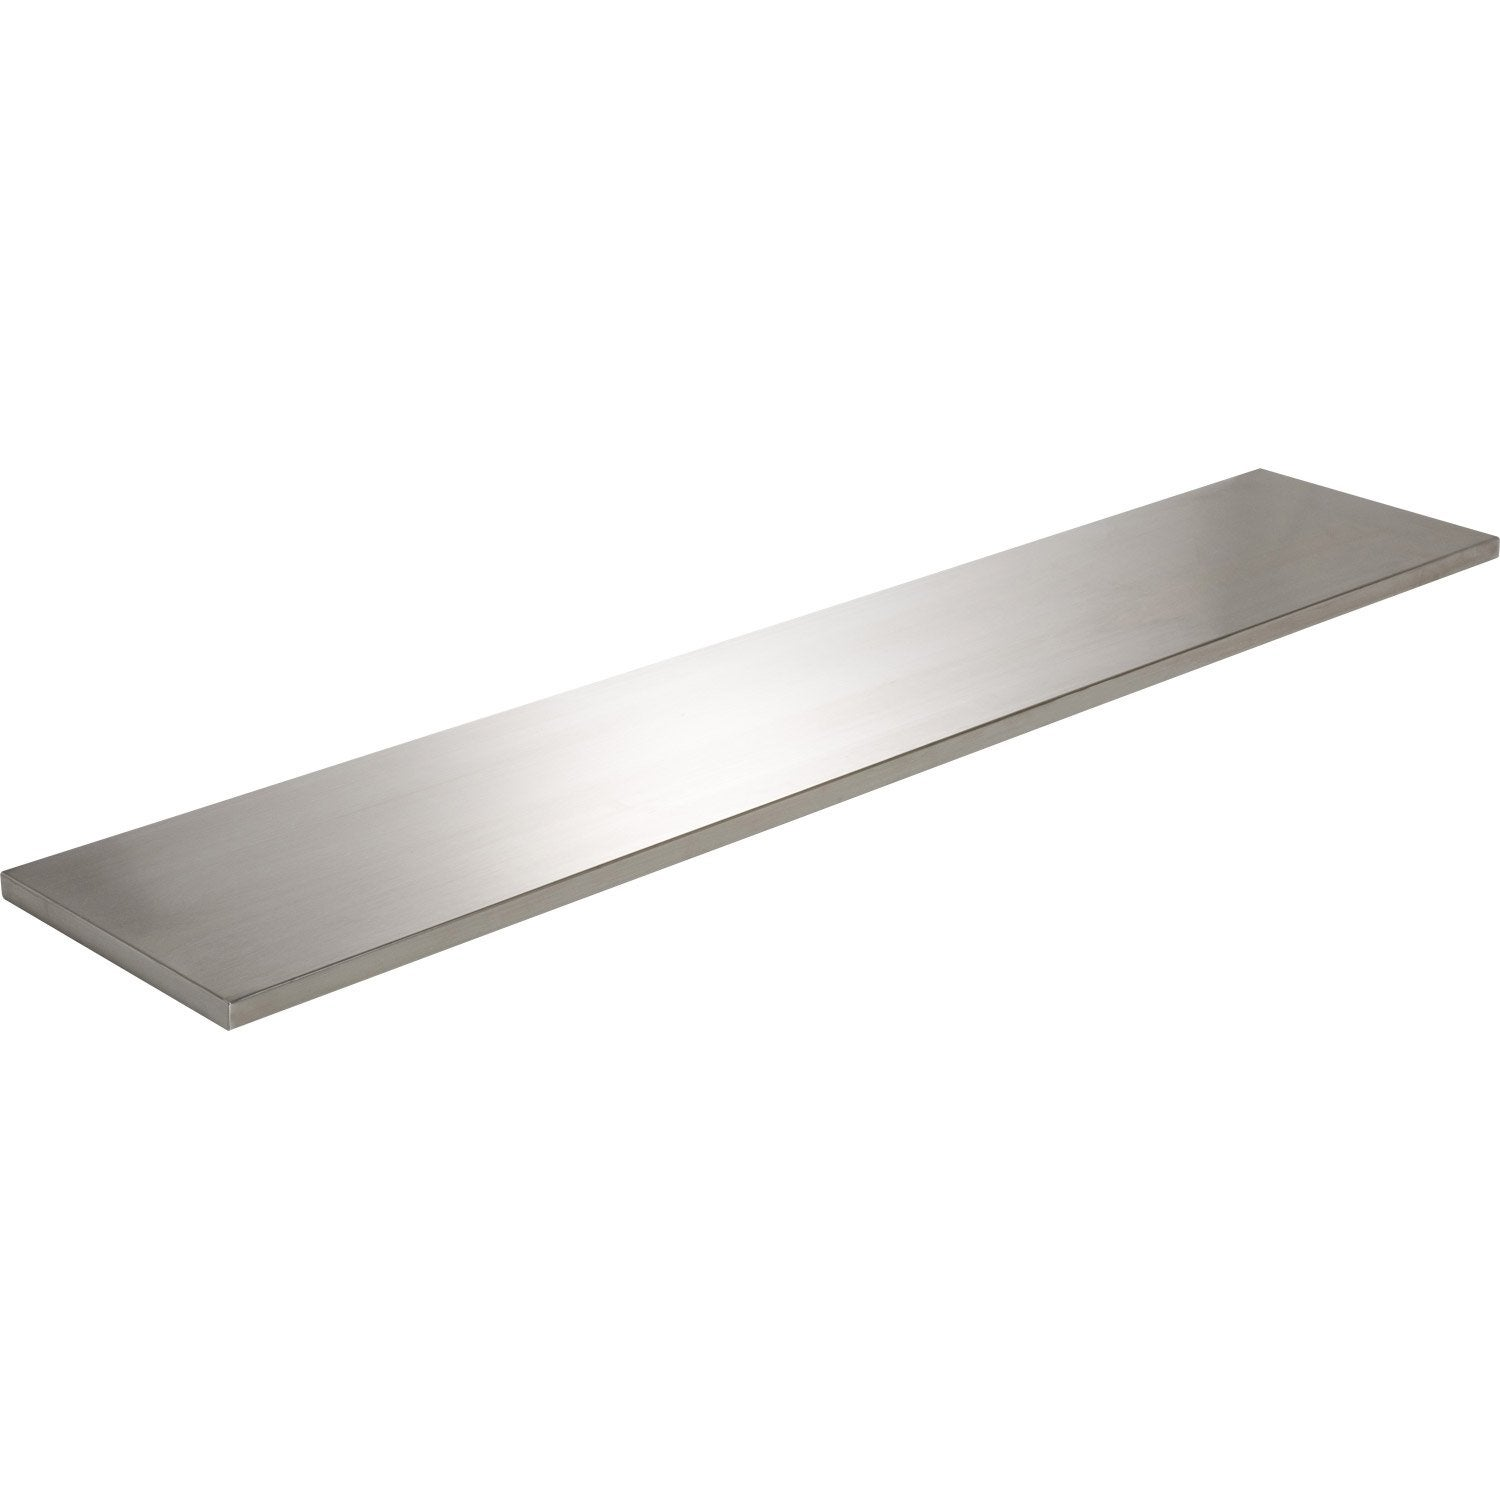 Etag re murale inox x cm mm leroy merlin for Leroy merlin etagere salle de bain